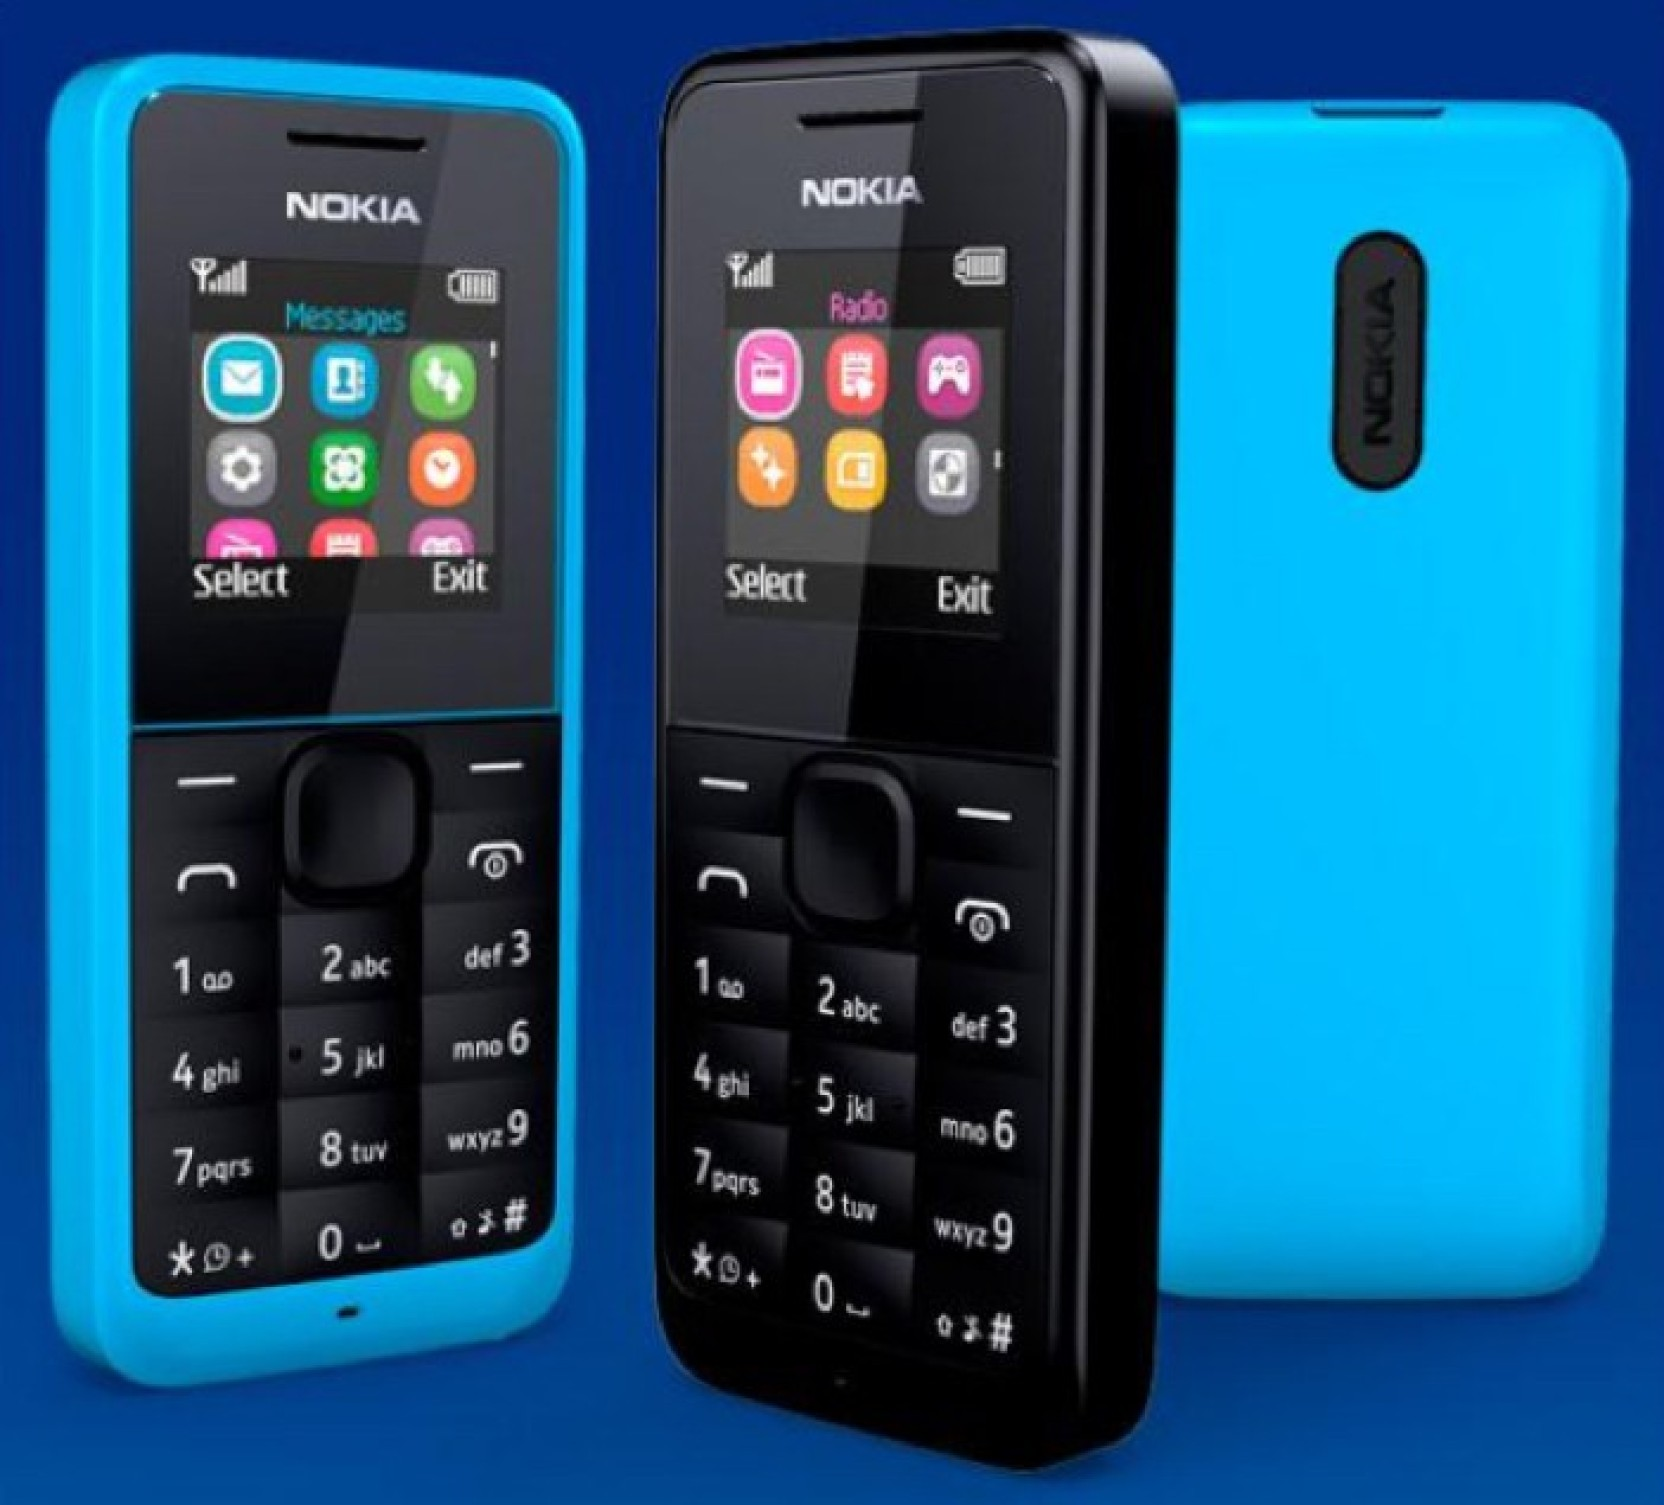 Nokia 105 Ds Online At Best Price Only On Single Sim Handphone Black Compare